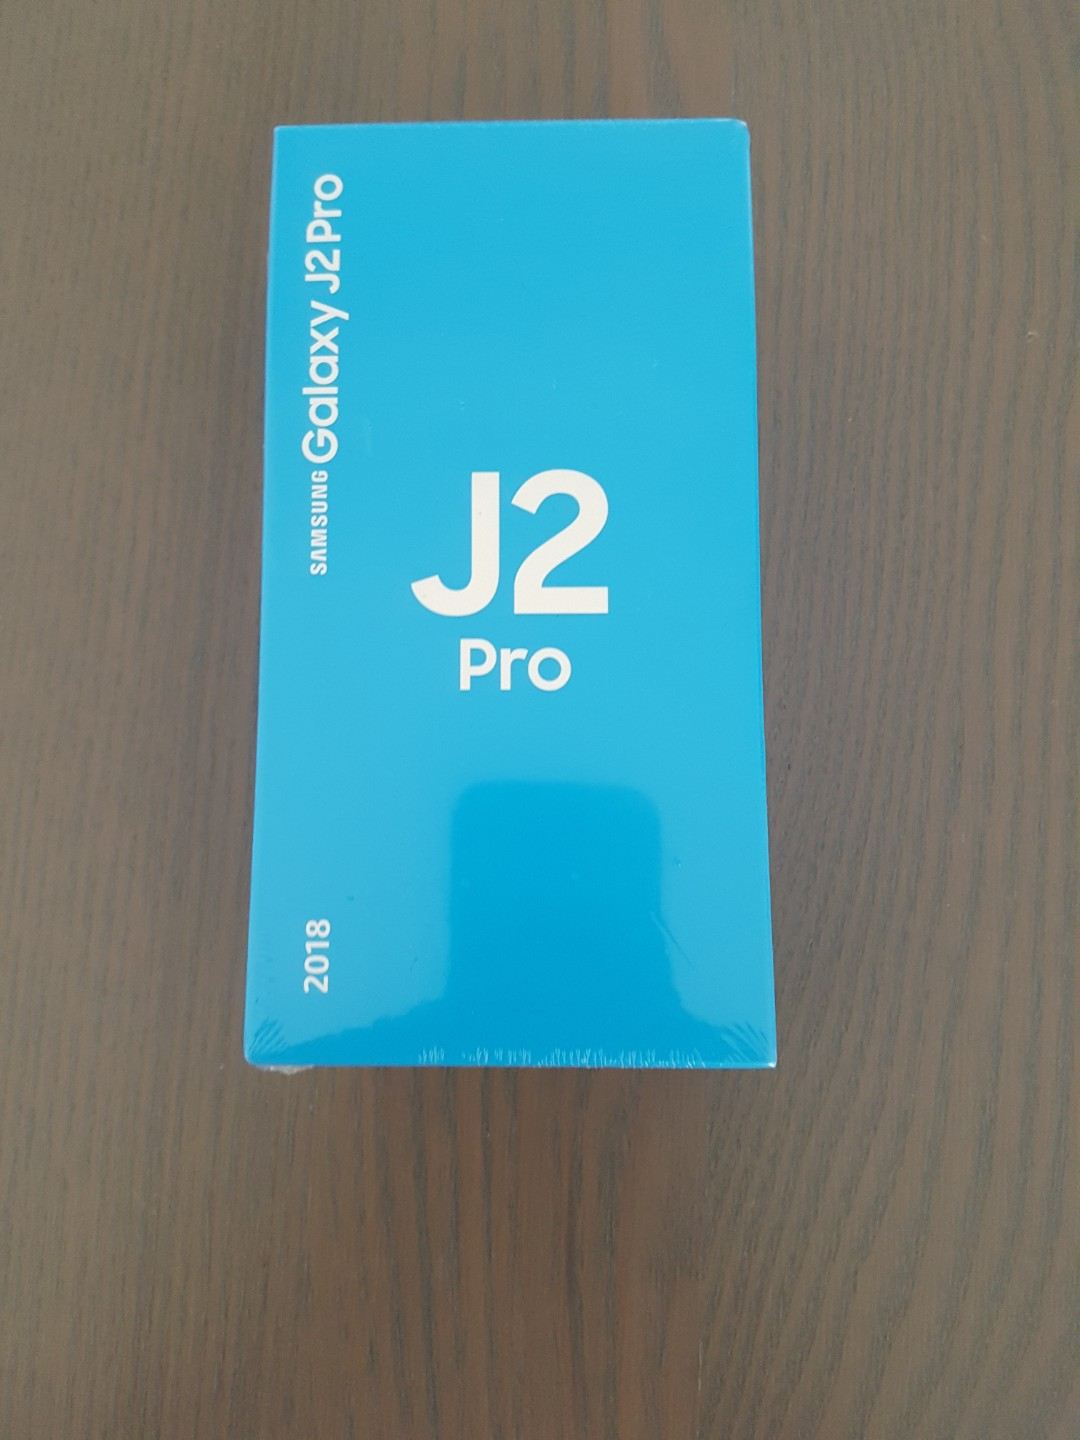 Handphone Samsung Galaxy J2pro Mobile Phones Tablets Others On